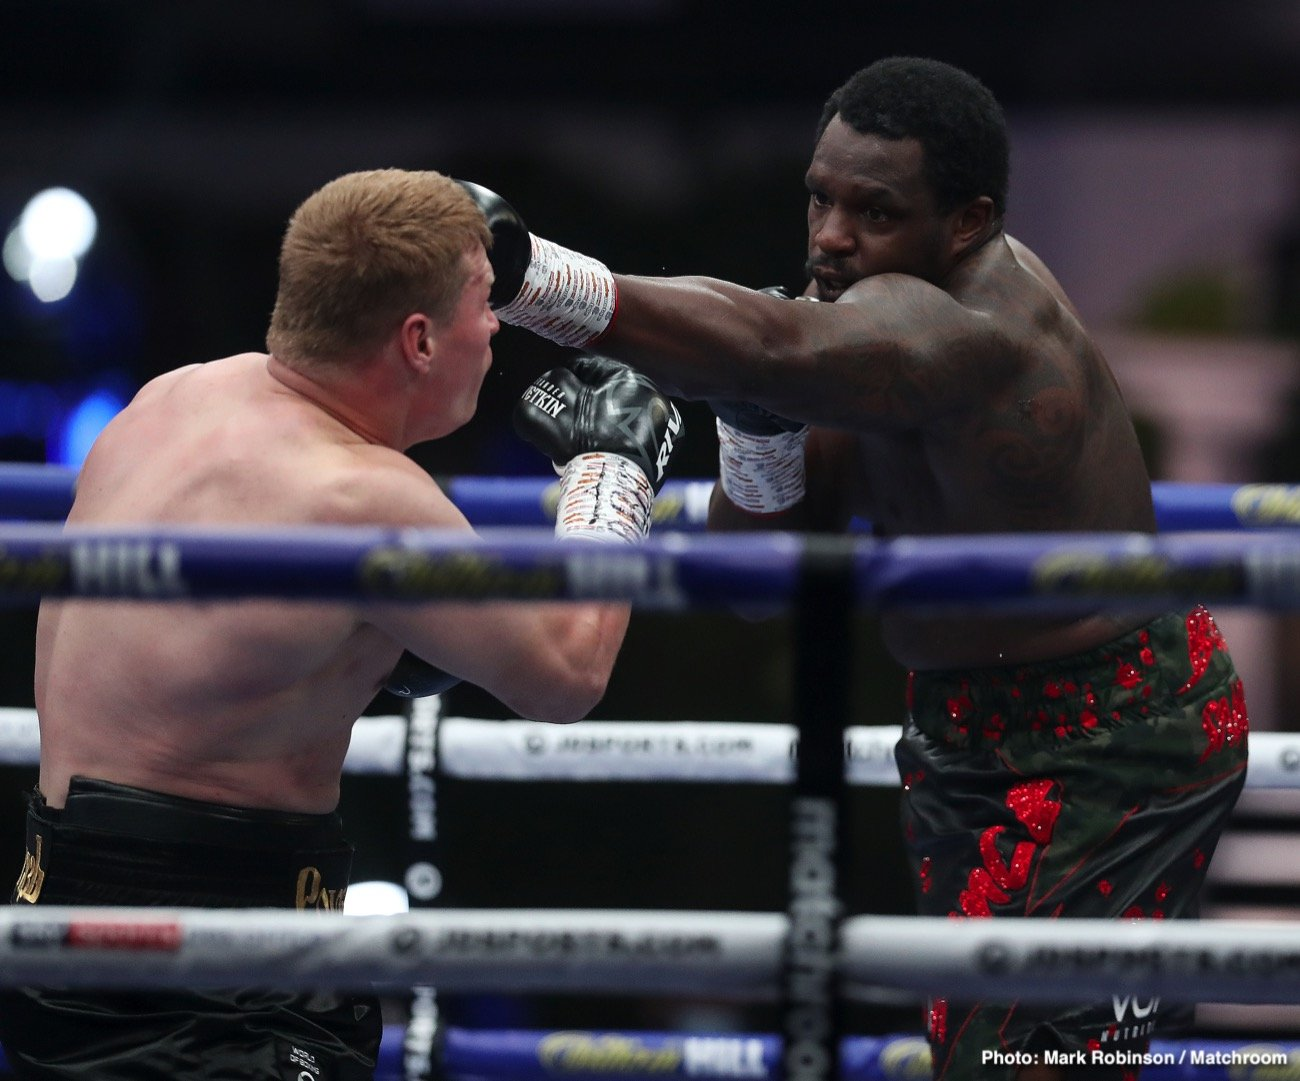 Alexander Povetkin, Alexander Usyk, David Haye, Derek Chisora, Dillian Whyte - David Haye is predicting that Dillian Whyte will brush himself off and come back from his crushing 5th round knockout loss to 40-year-old Alexander Povetkin to avenge his loss in their rematch in November. Whyte (27-2, 18 KOs) didn't look like the same fighter he normally is, according to Haye.